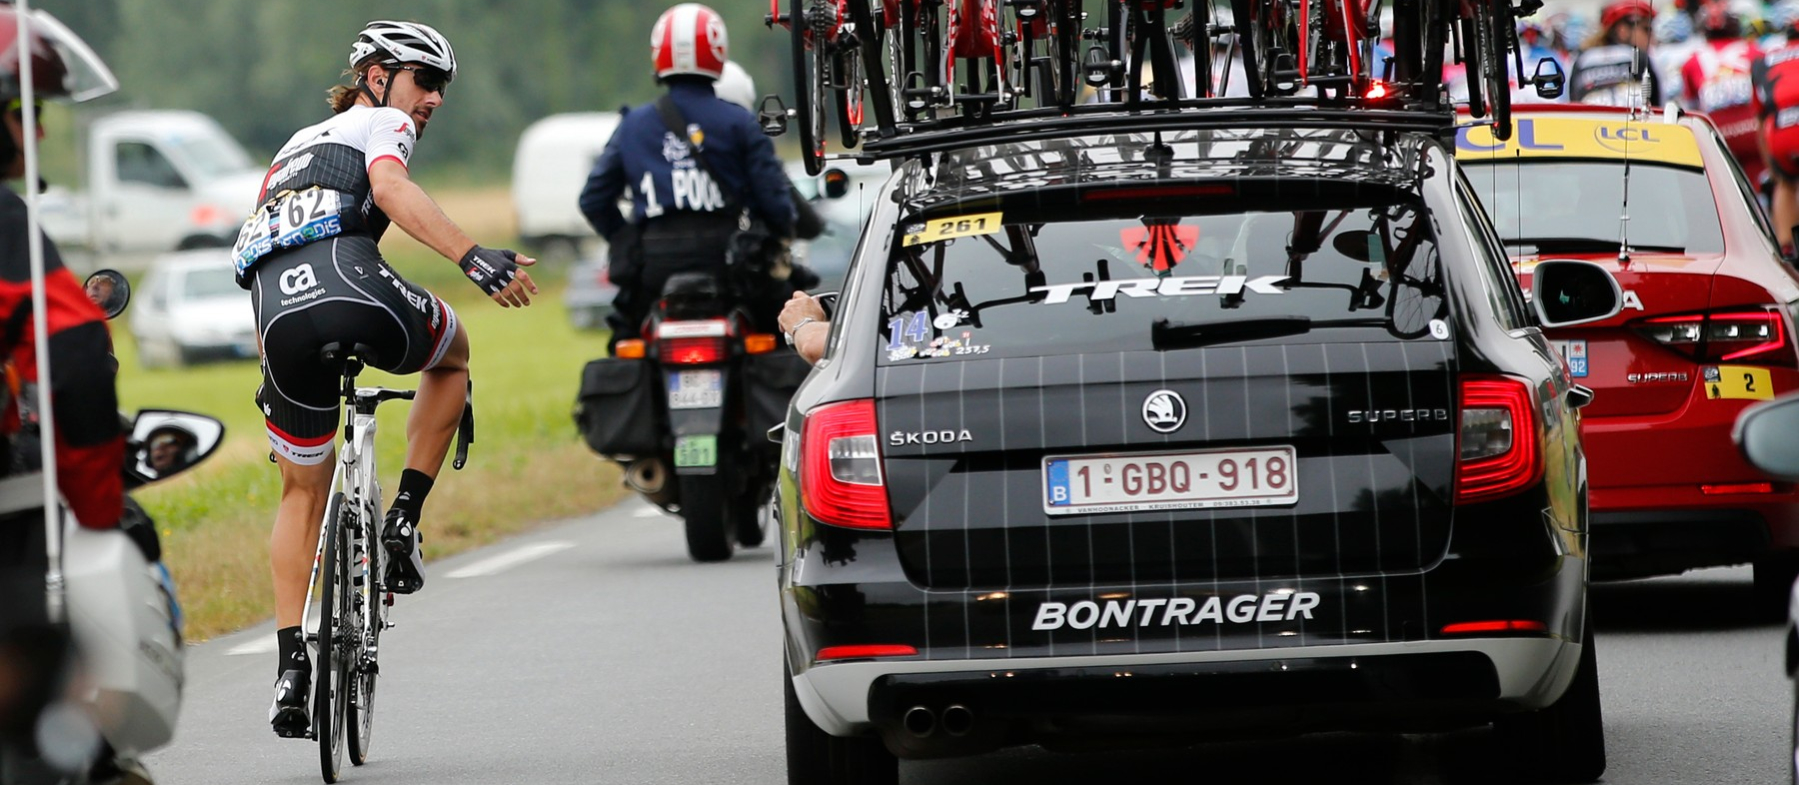 The Cars of Le Tour de France - WeLoveCycling magazine 8eecd34c4